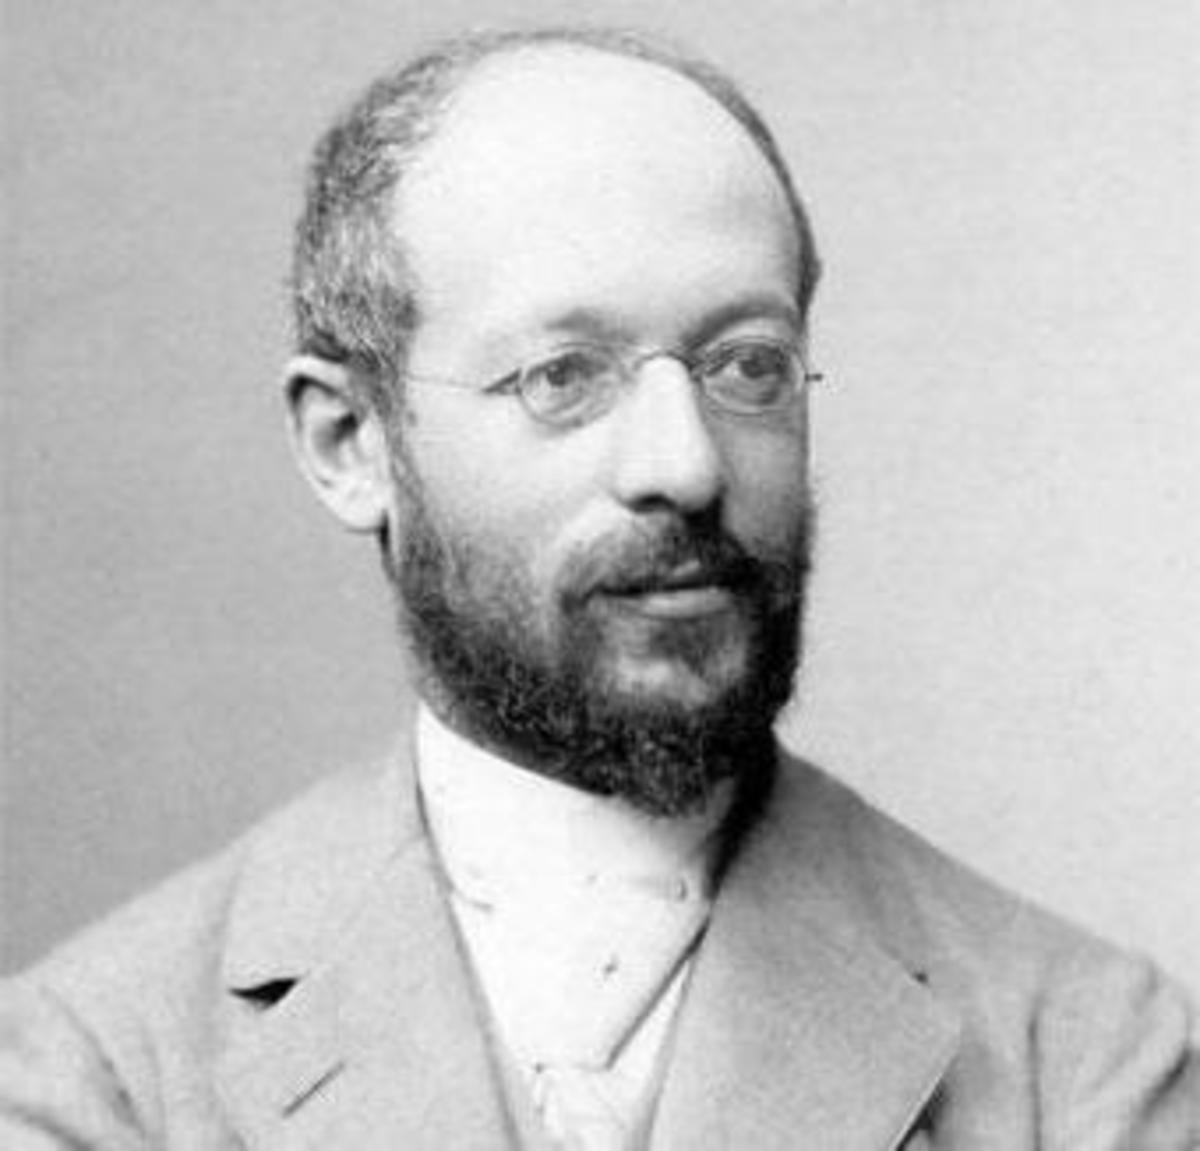 Are Simmel's Ideas About Fashion Still Relevant Today?